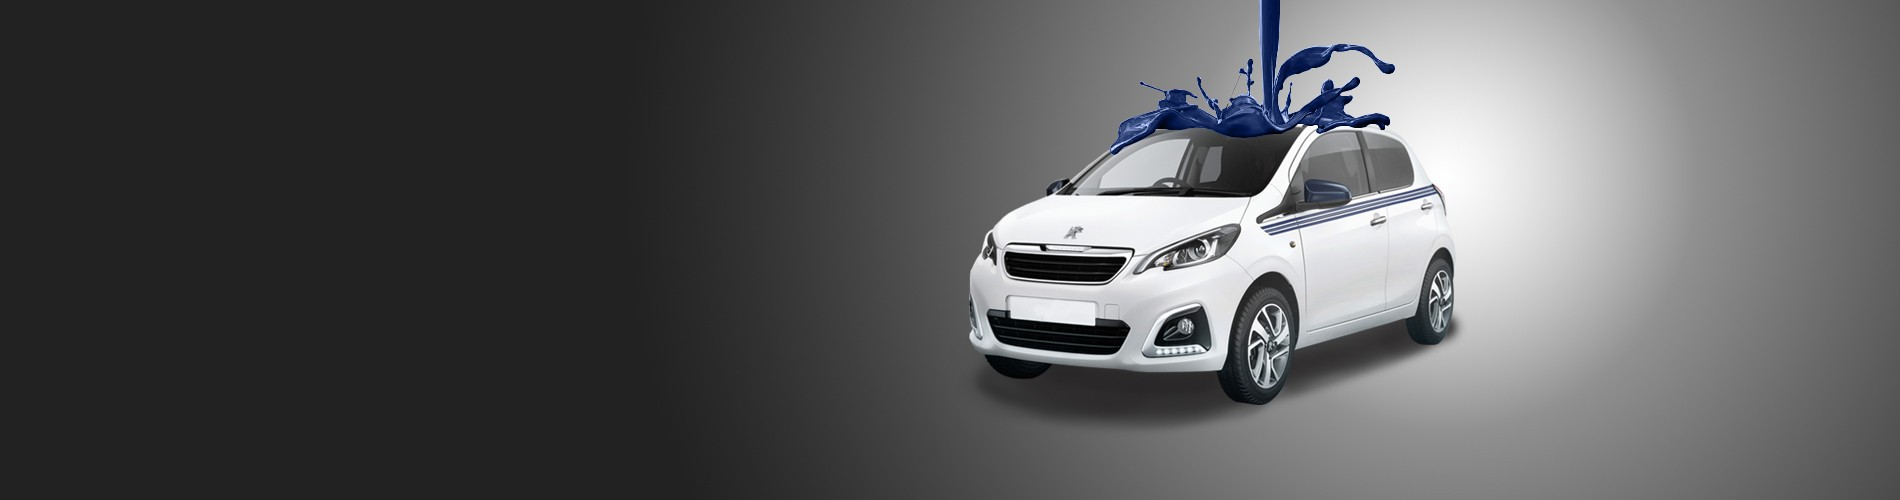 Ma Belle Voiture - Peugeot 108 Stickers